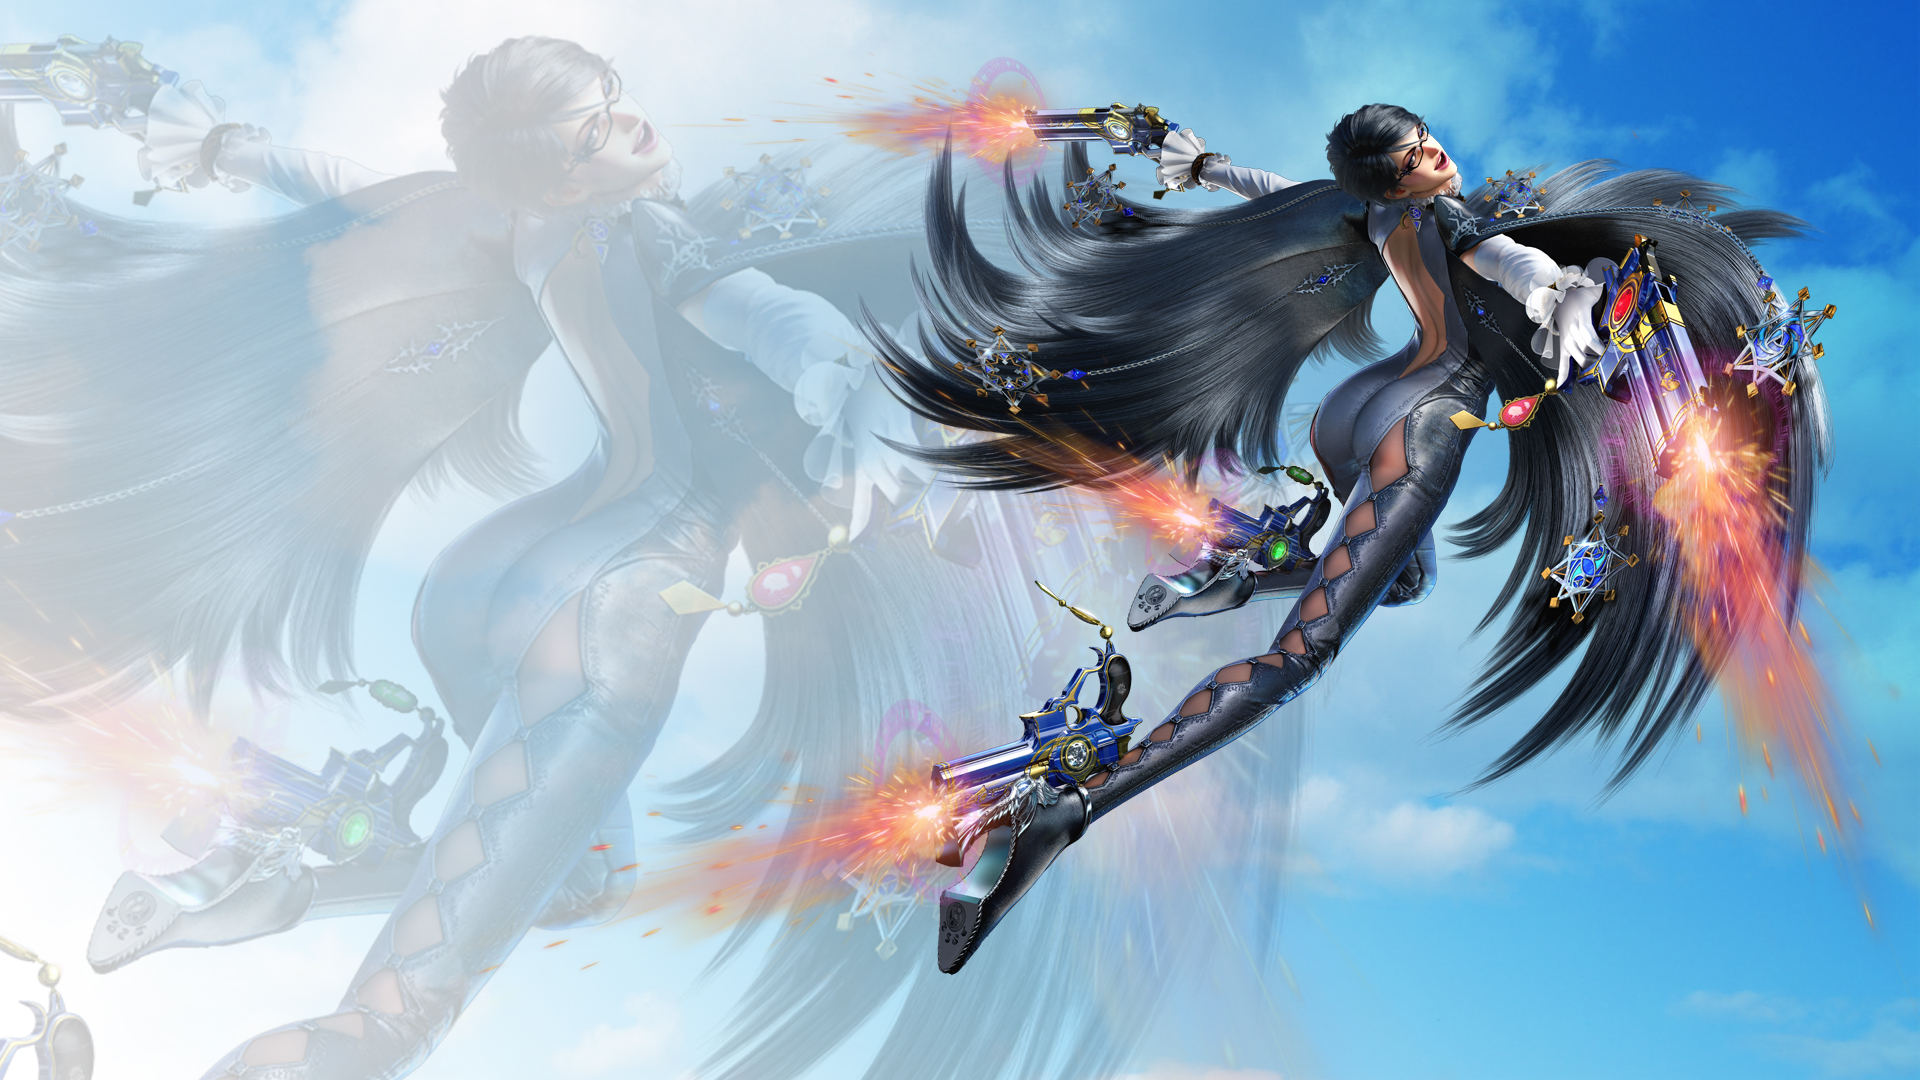 Kamiya Turned Down Opportunity For Bayonetta To Be In Project X